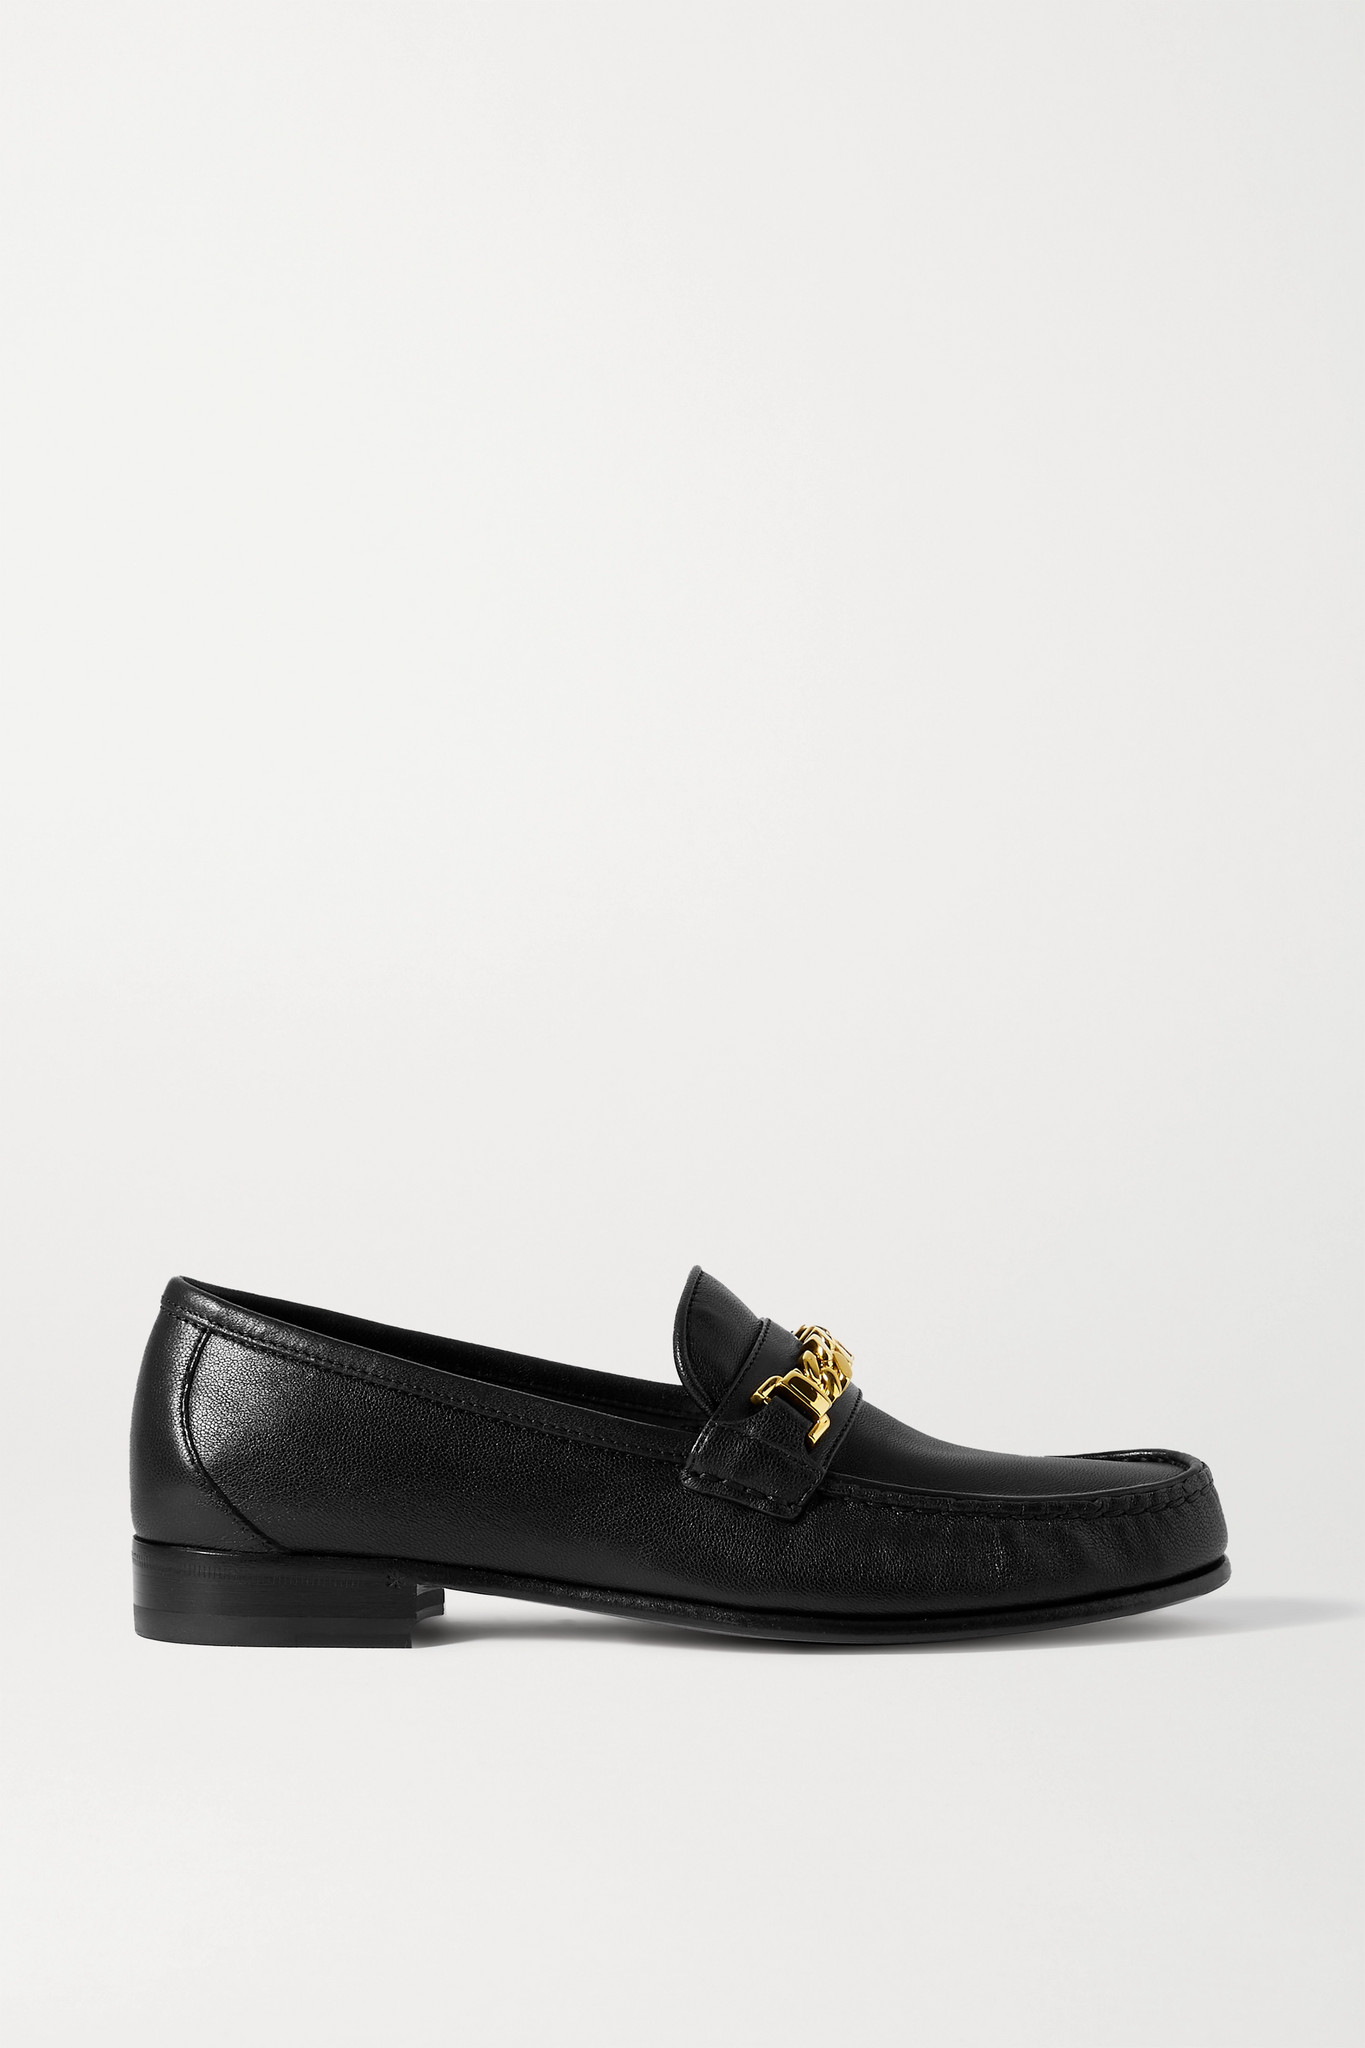 GUCCI - + Net Sustain Sylvie Chain-embellished Leather Loafers - Black - IT34